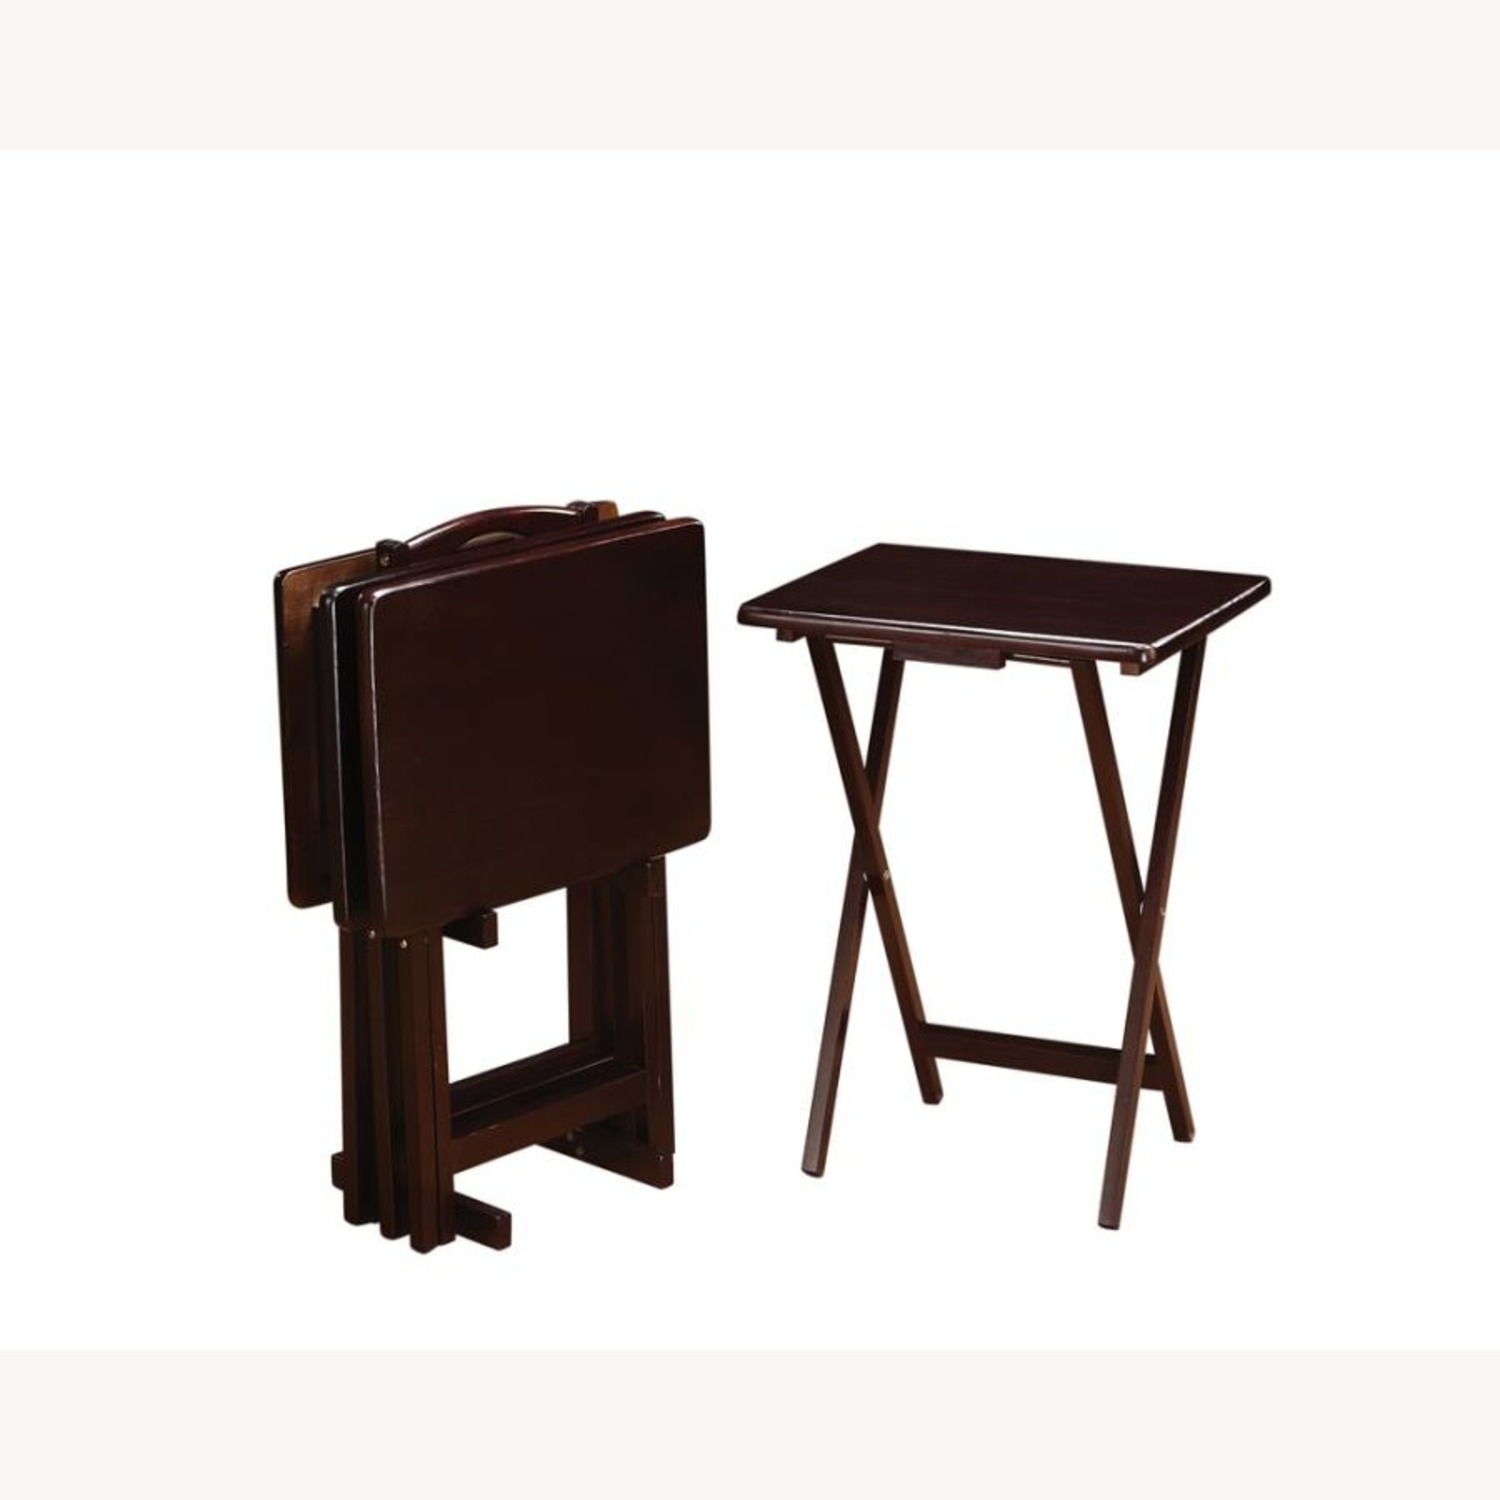 5-Piece Tray Table In Cappuccino Finish - image-1